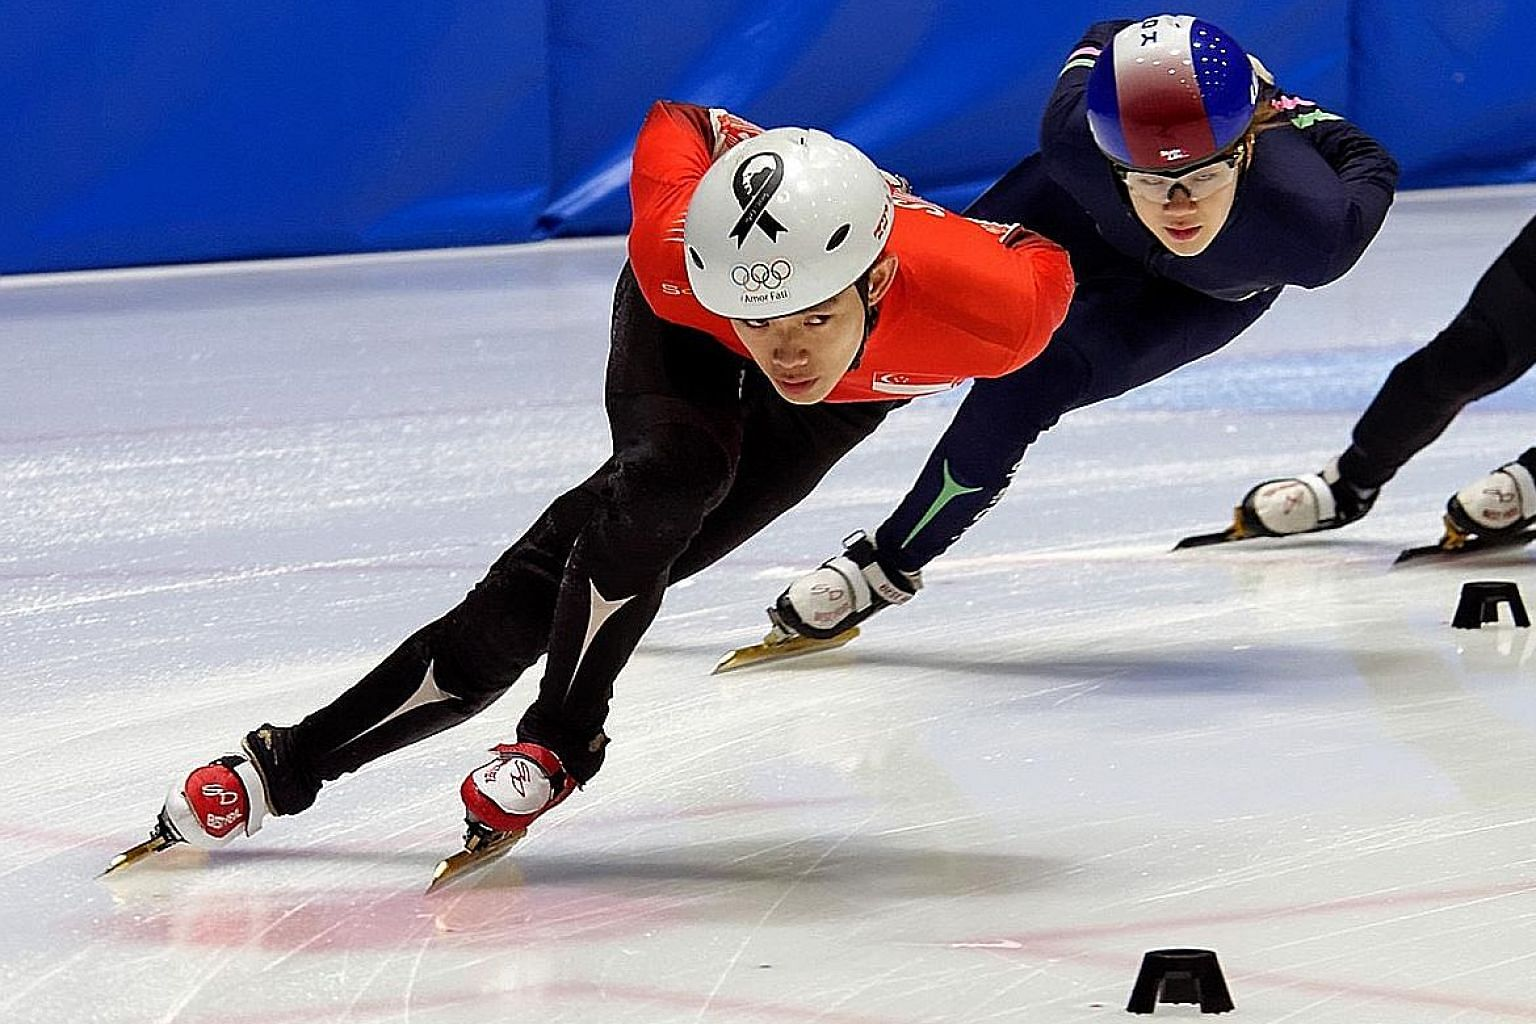 Lucas Ng (front) training in Goyang with elite-level Korean skaters, such as 2014 Winter Olympics gold medallist Kong Sang Jeong (back).